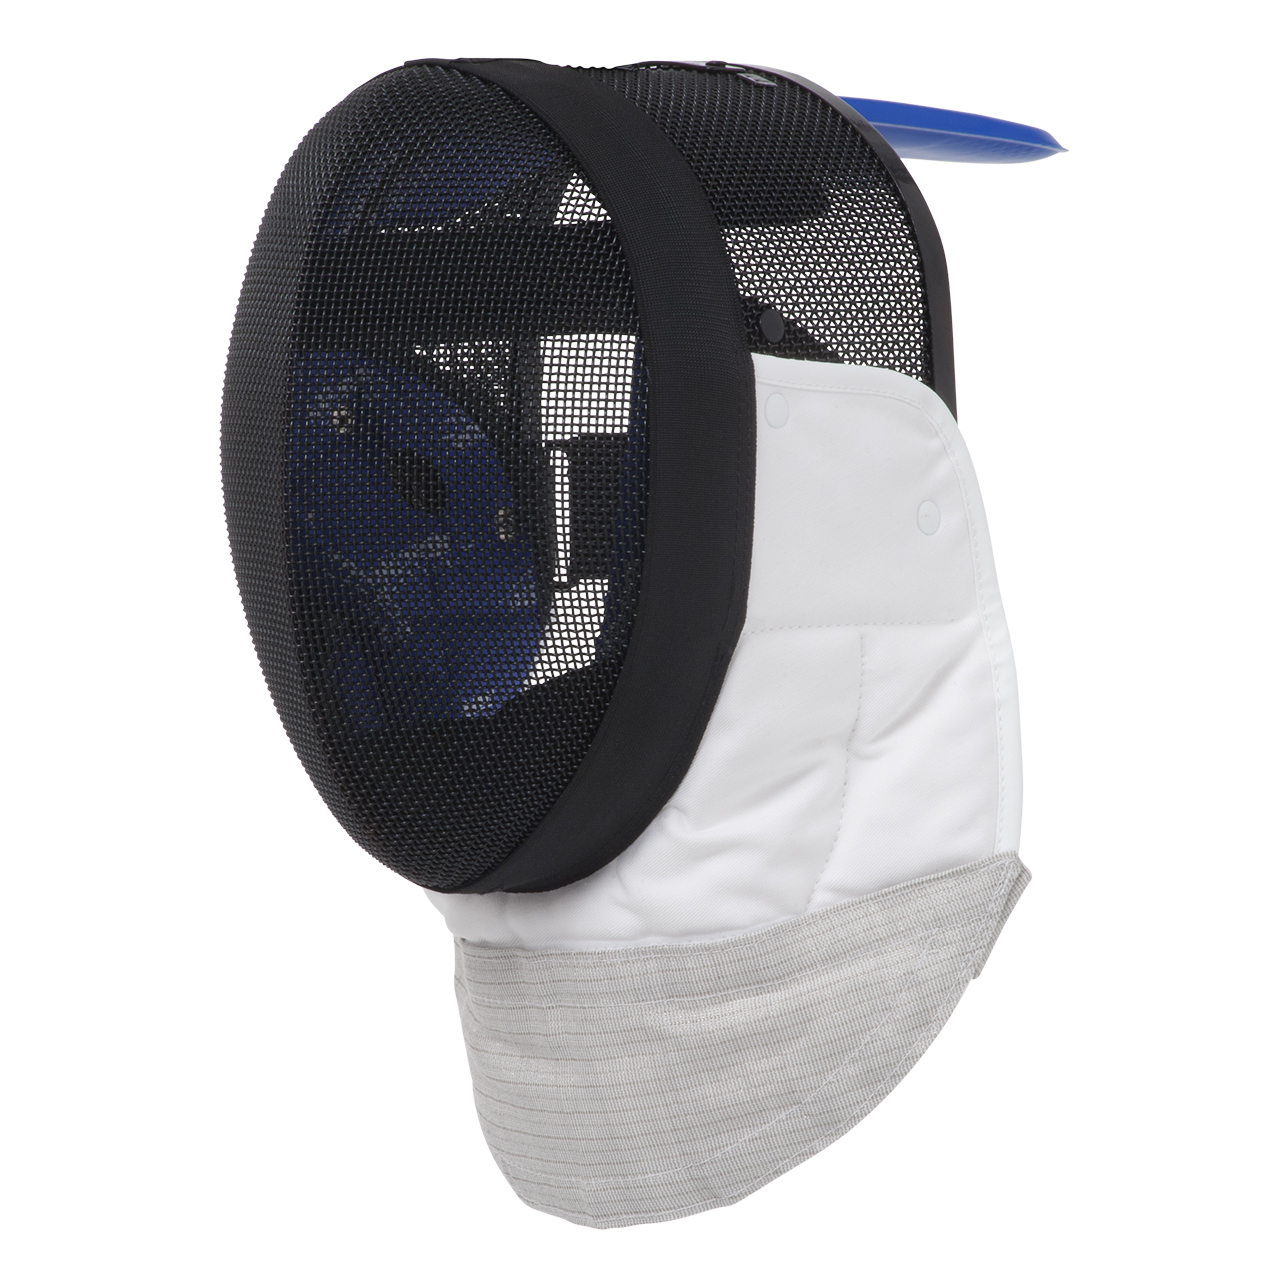 FIE Vario mask 1600N, with detachable conductive bib